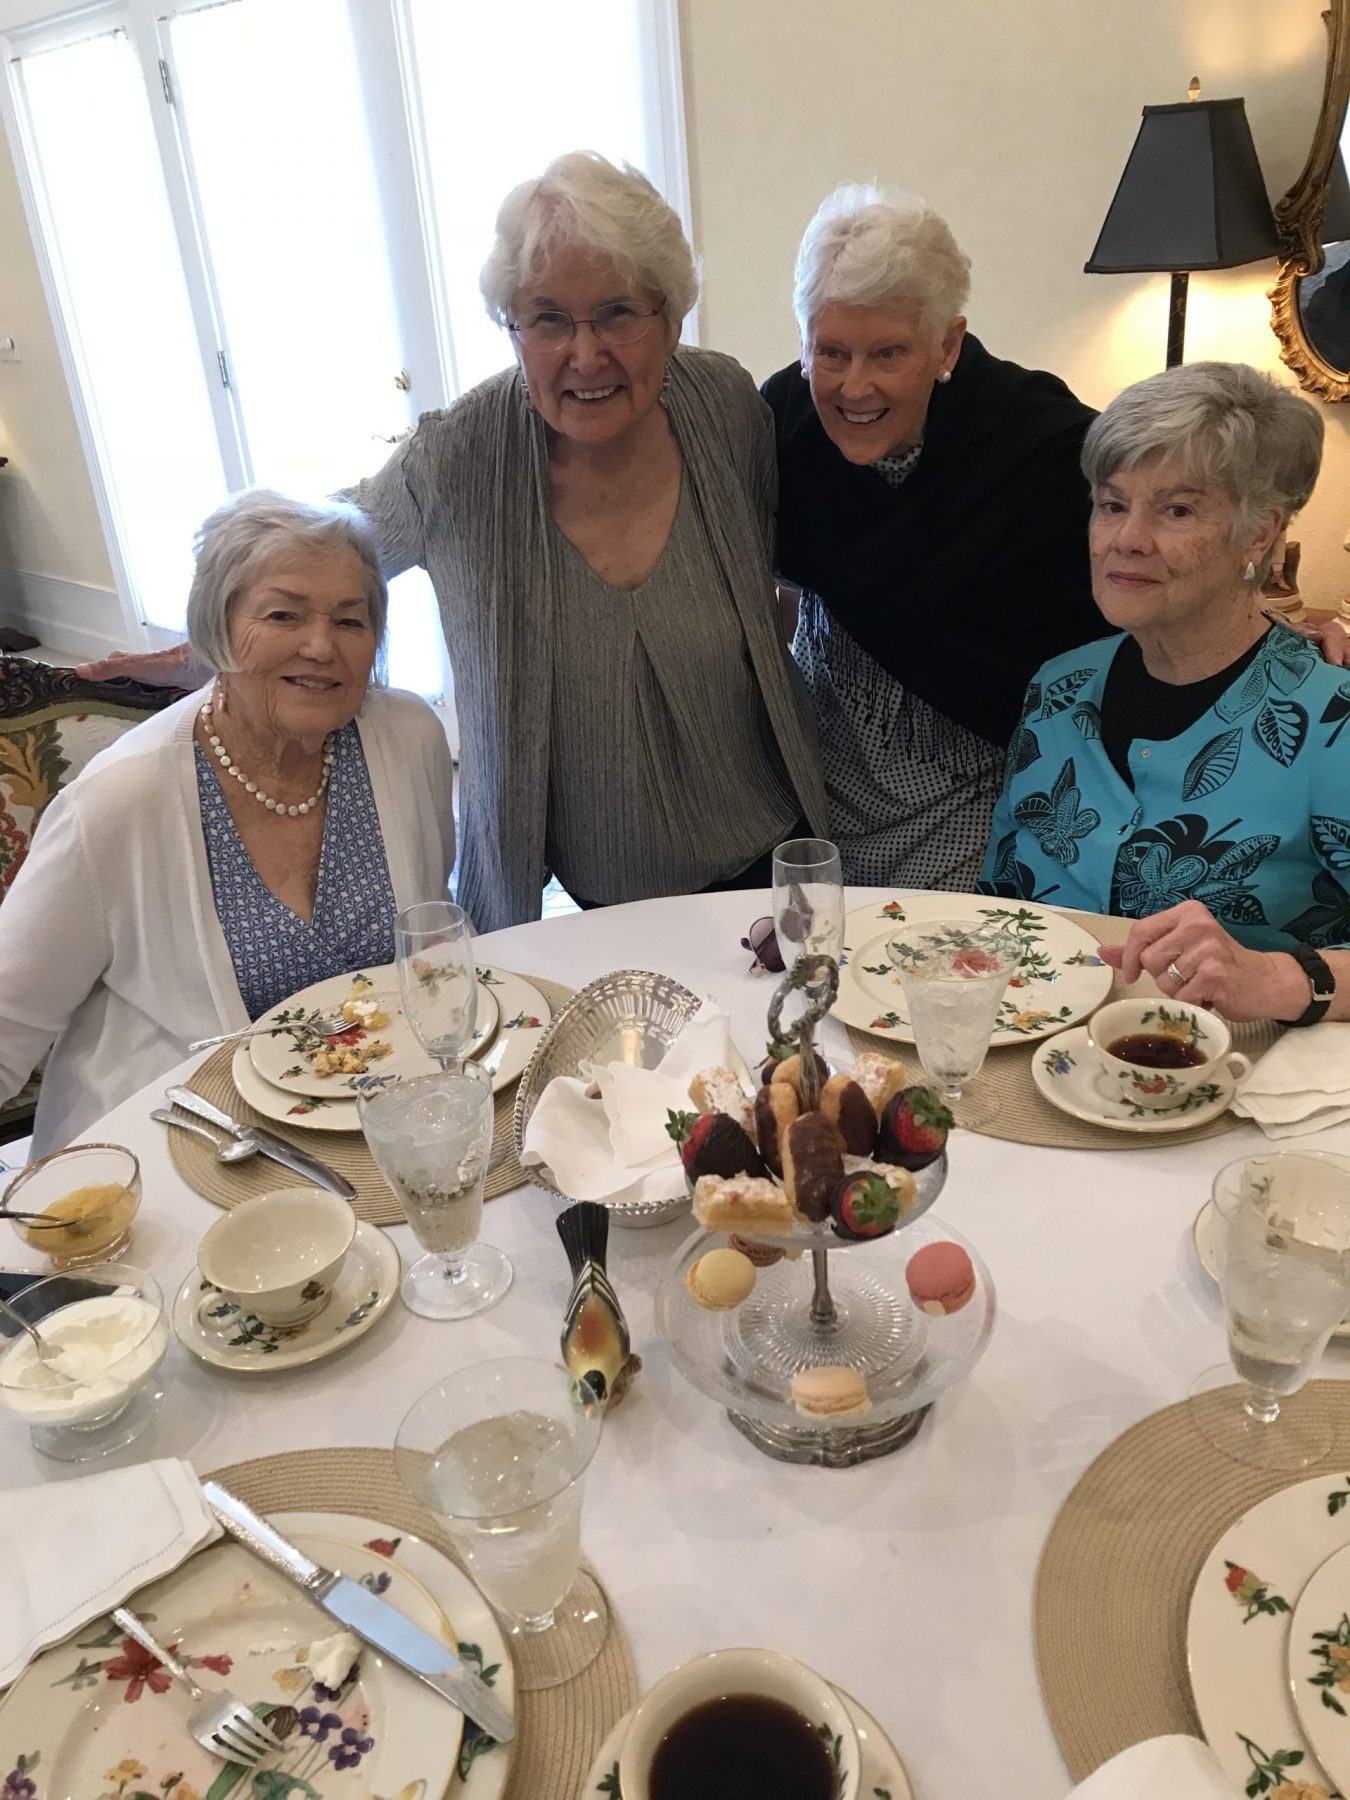 Four older women sit around a table